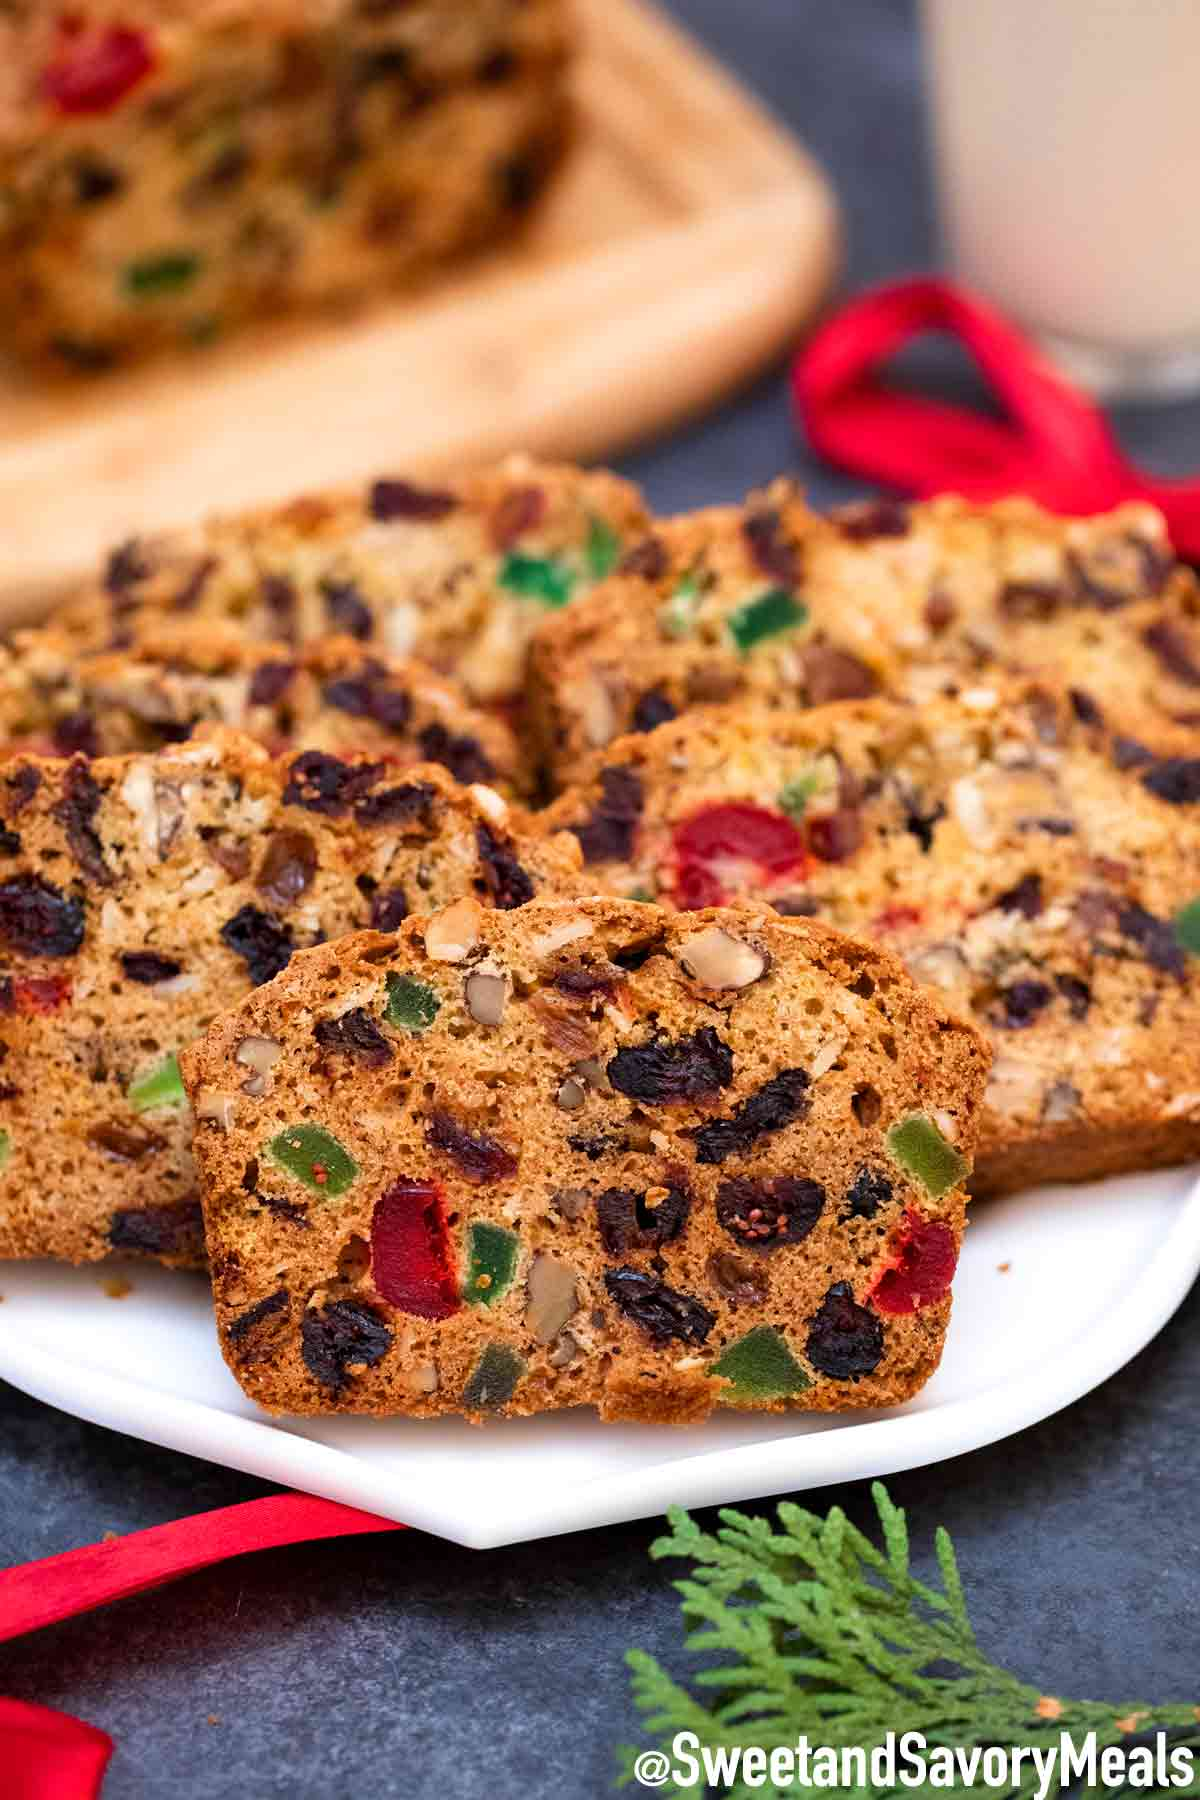 Fruit Cake Recipe Video Sweet And Savory Meals